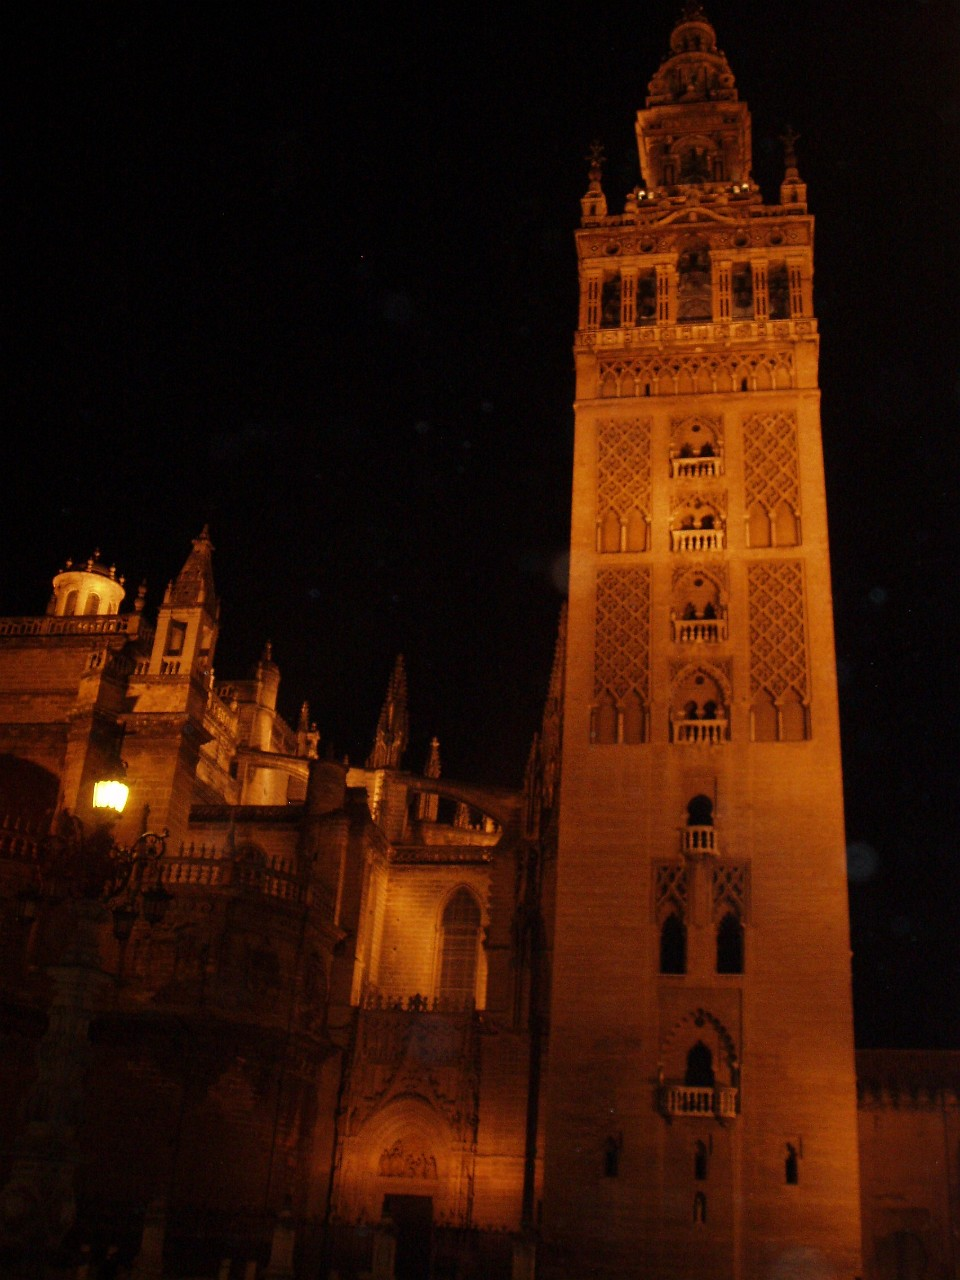 The Giralda (Cathedral Tower) in Seville